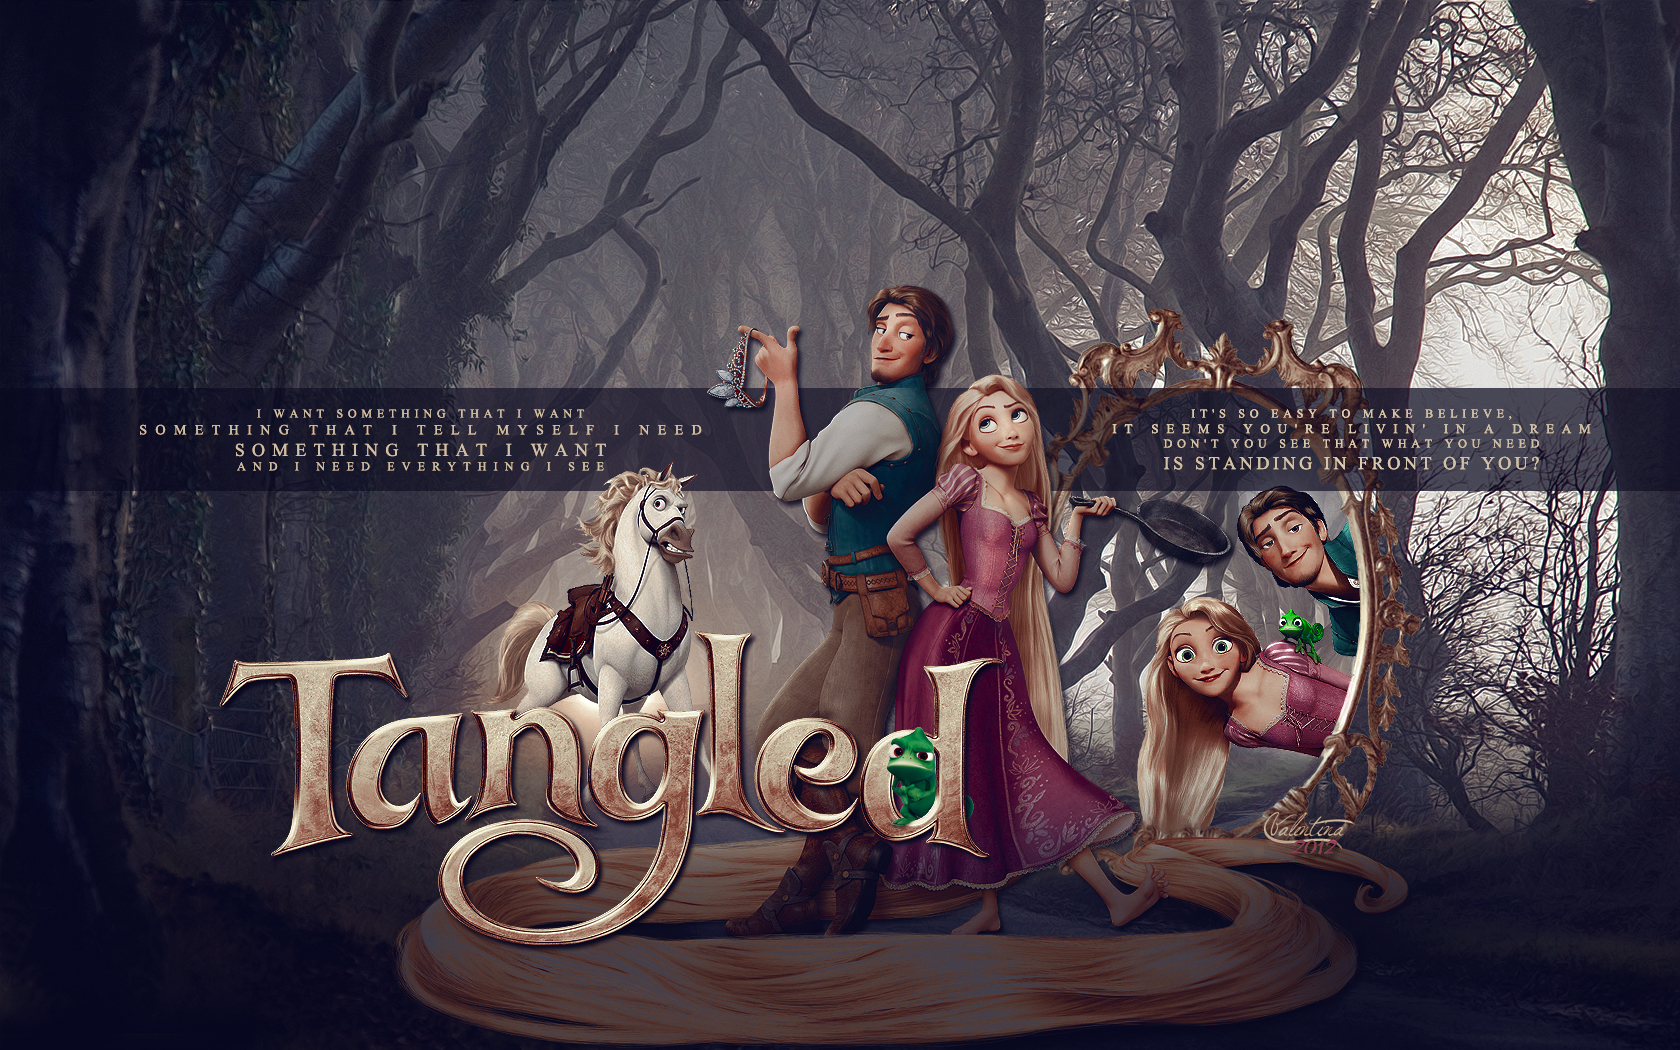 TANGLED wallpaper   Princess Rapunzel from Tangled Wallpaper 1680x1050